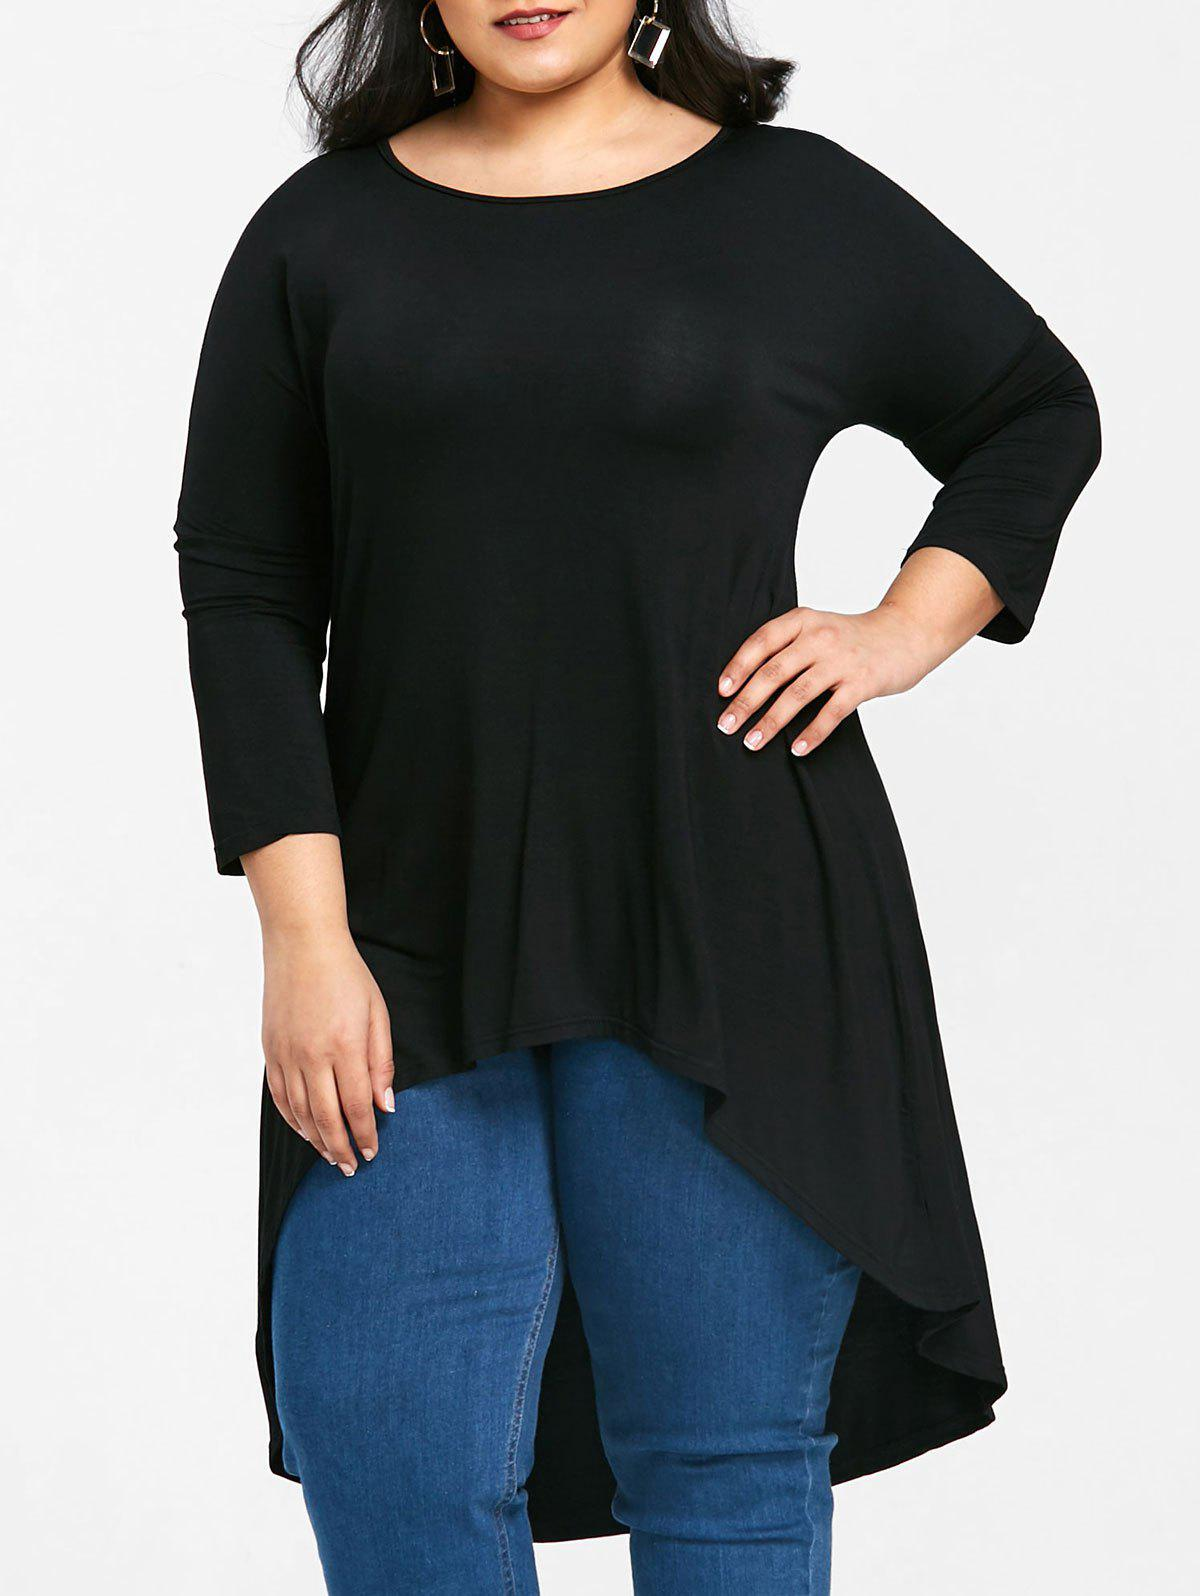 Buy Longline Plus Size High Low T-shirt